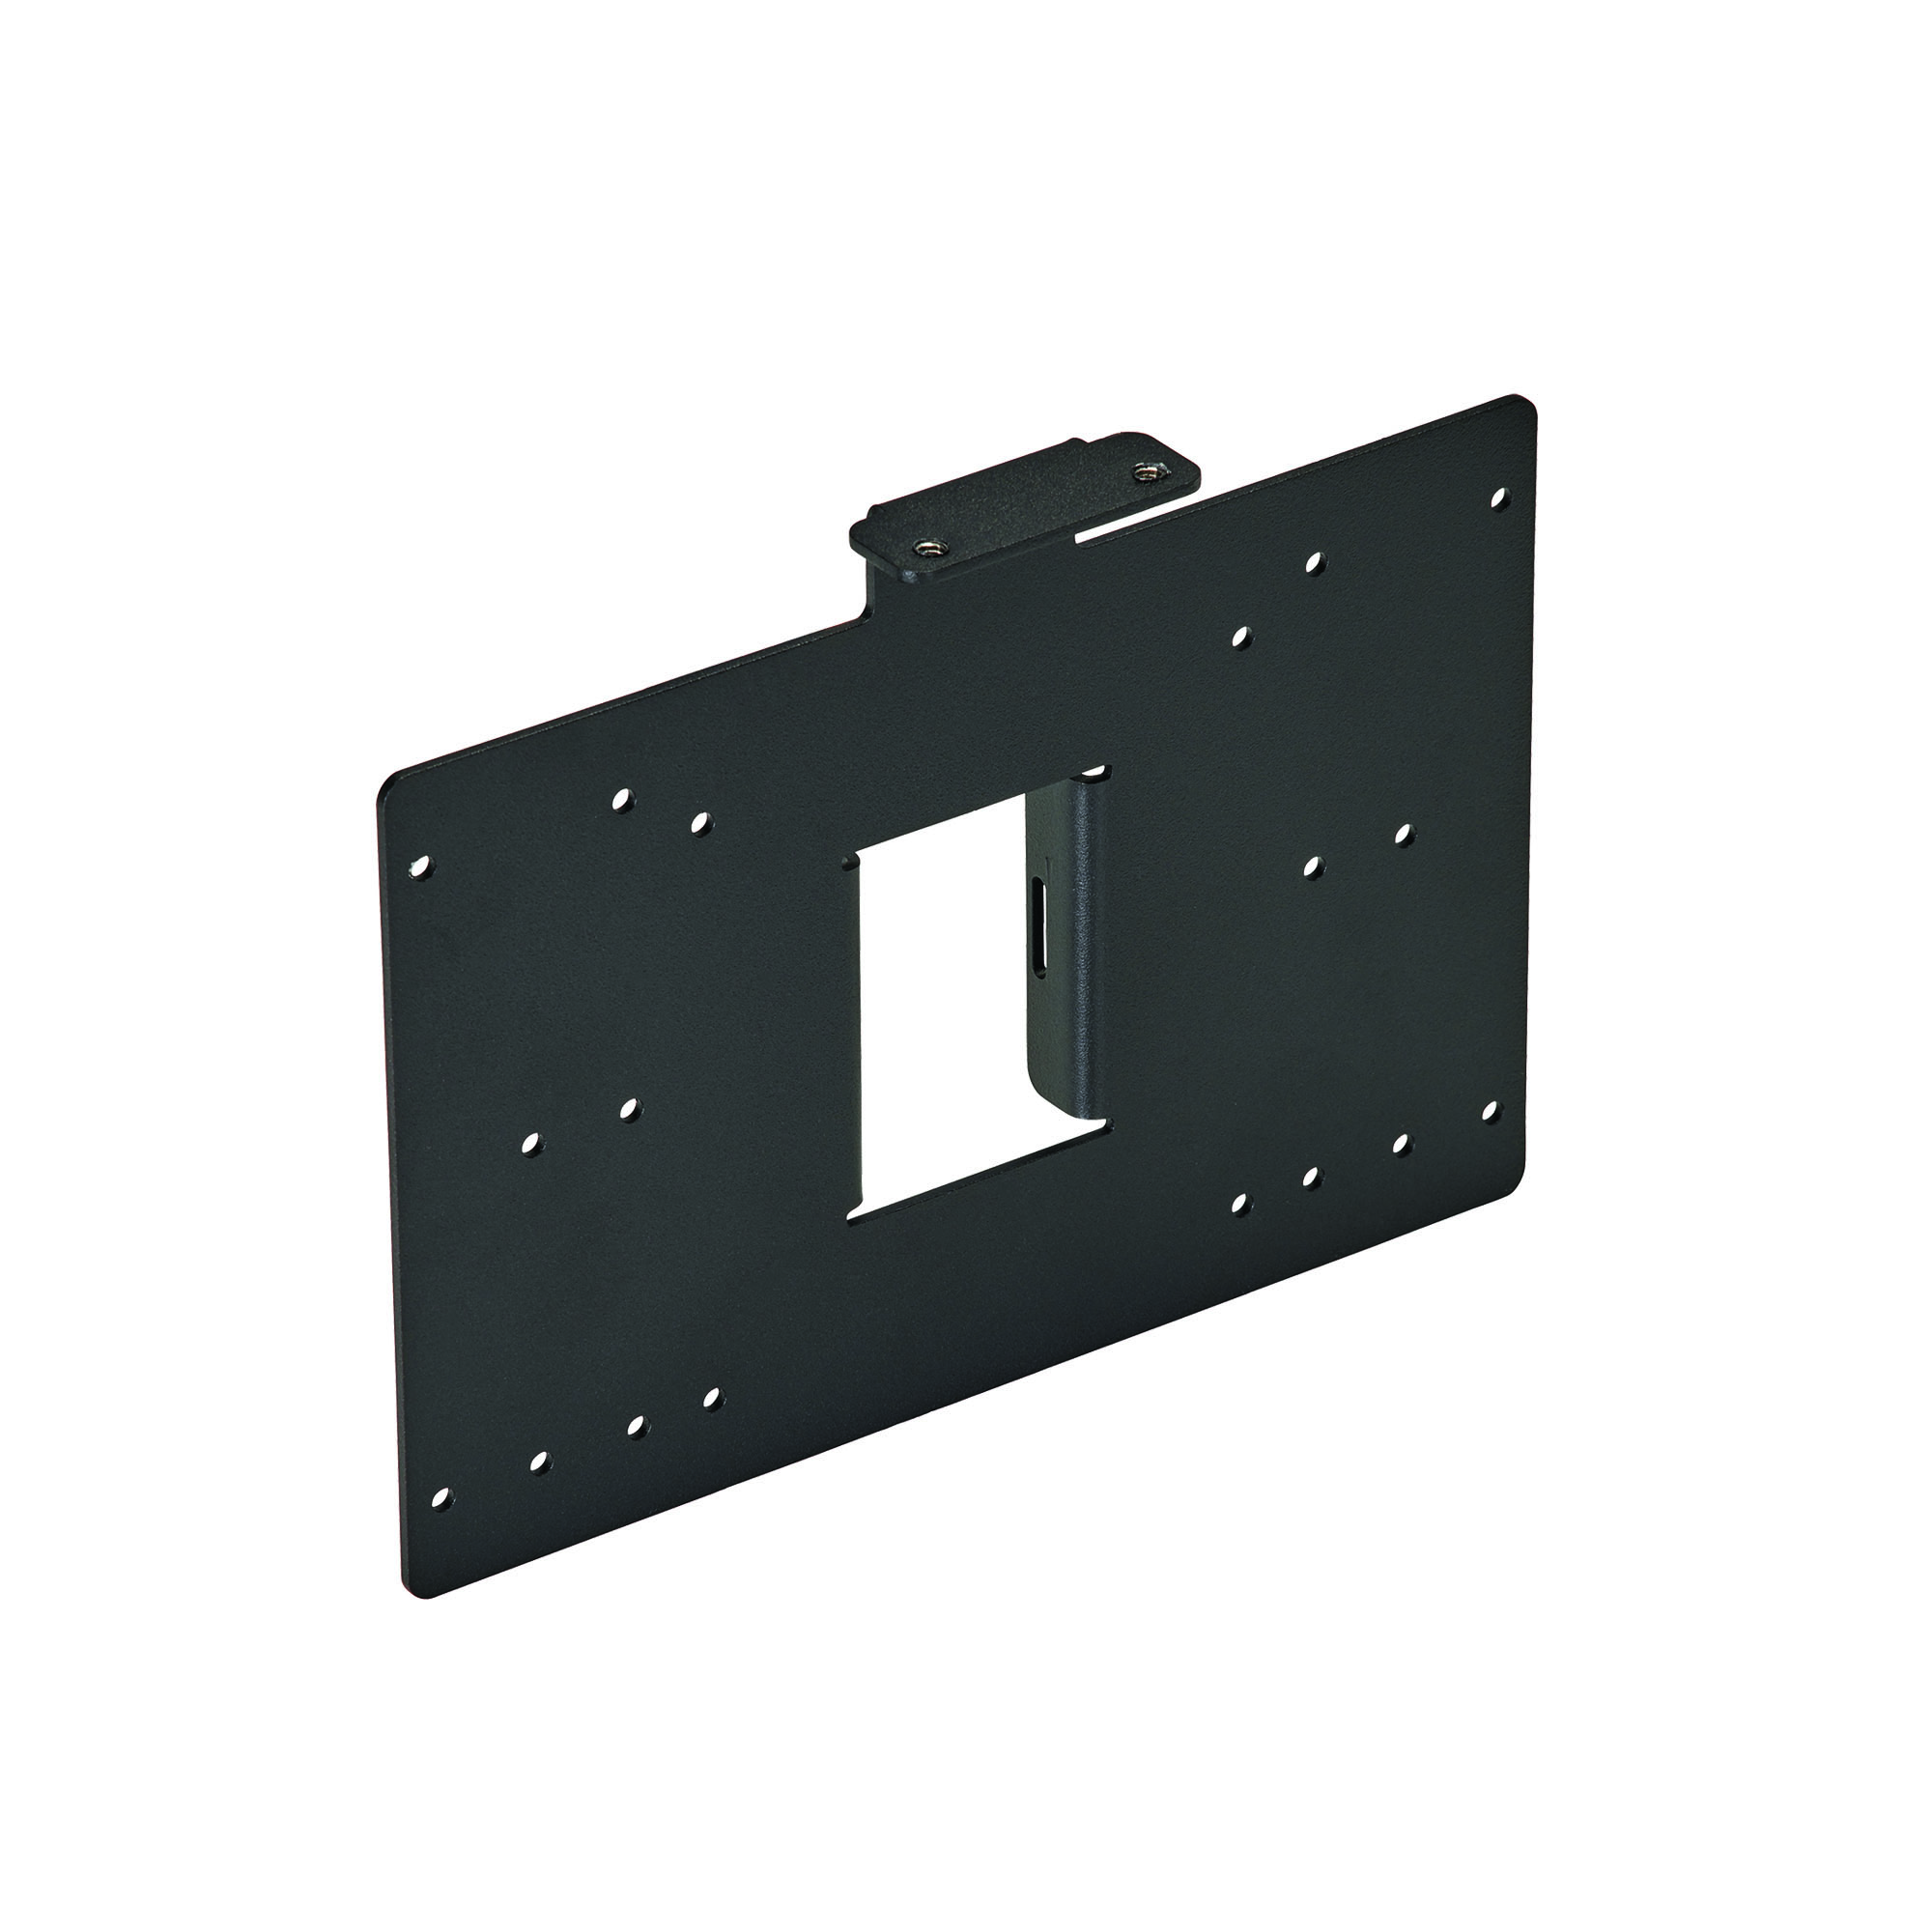 VUB-PLATE-PSU Bracket